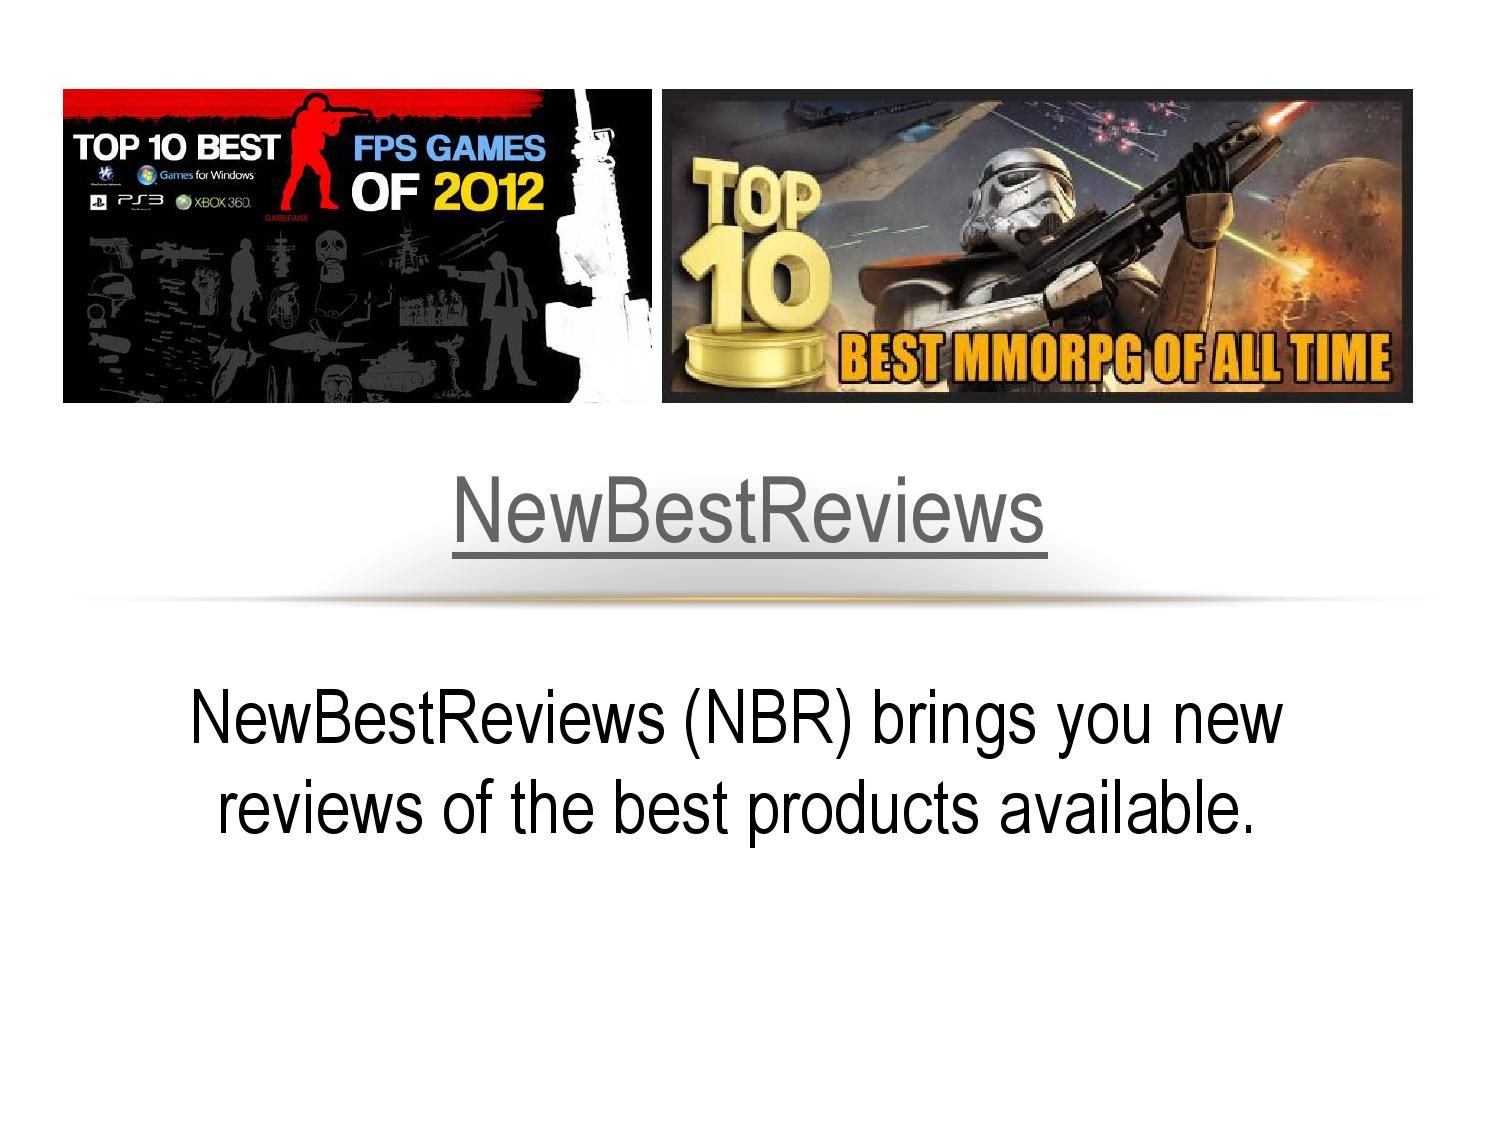 Nbr Nbr, Fps games, All about time